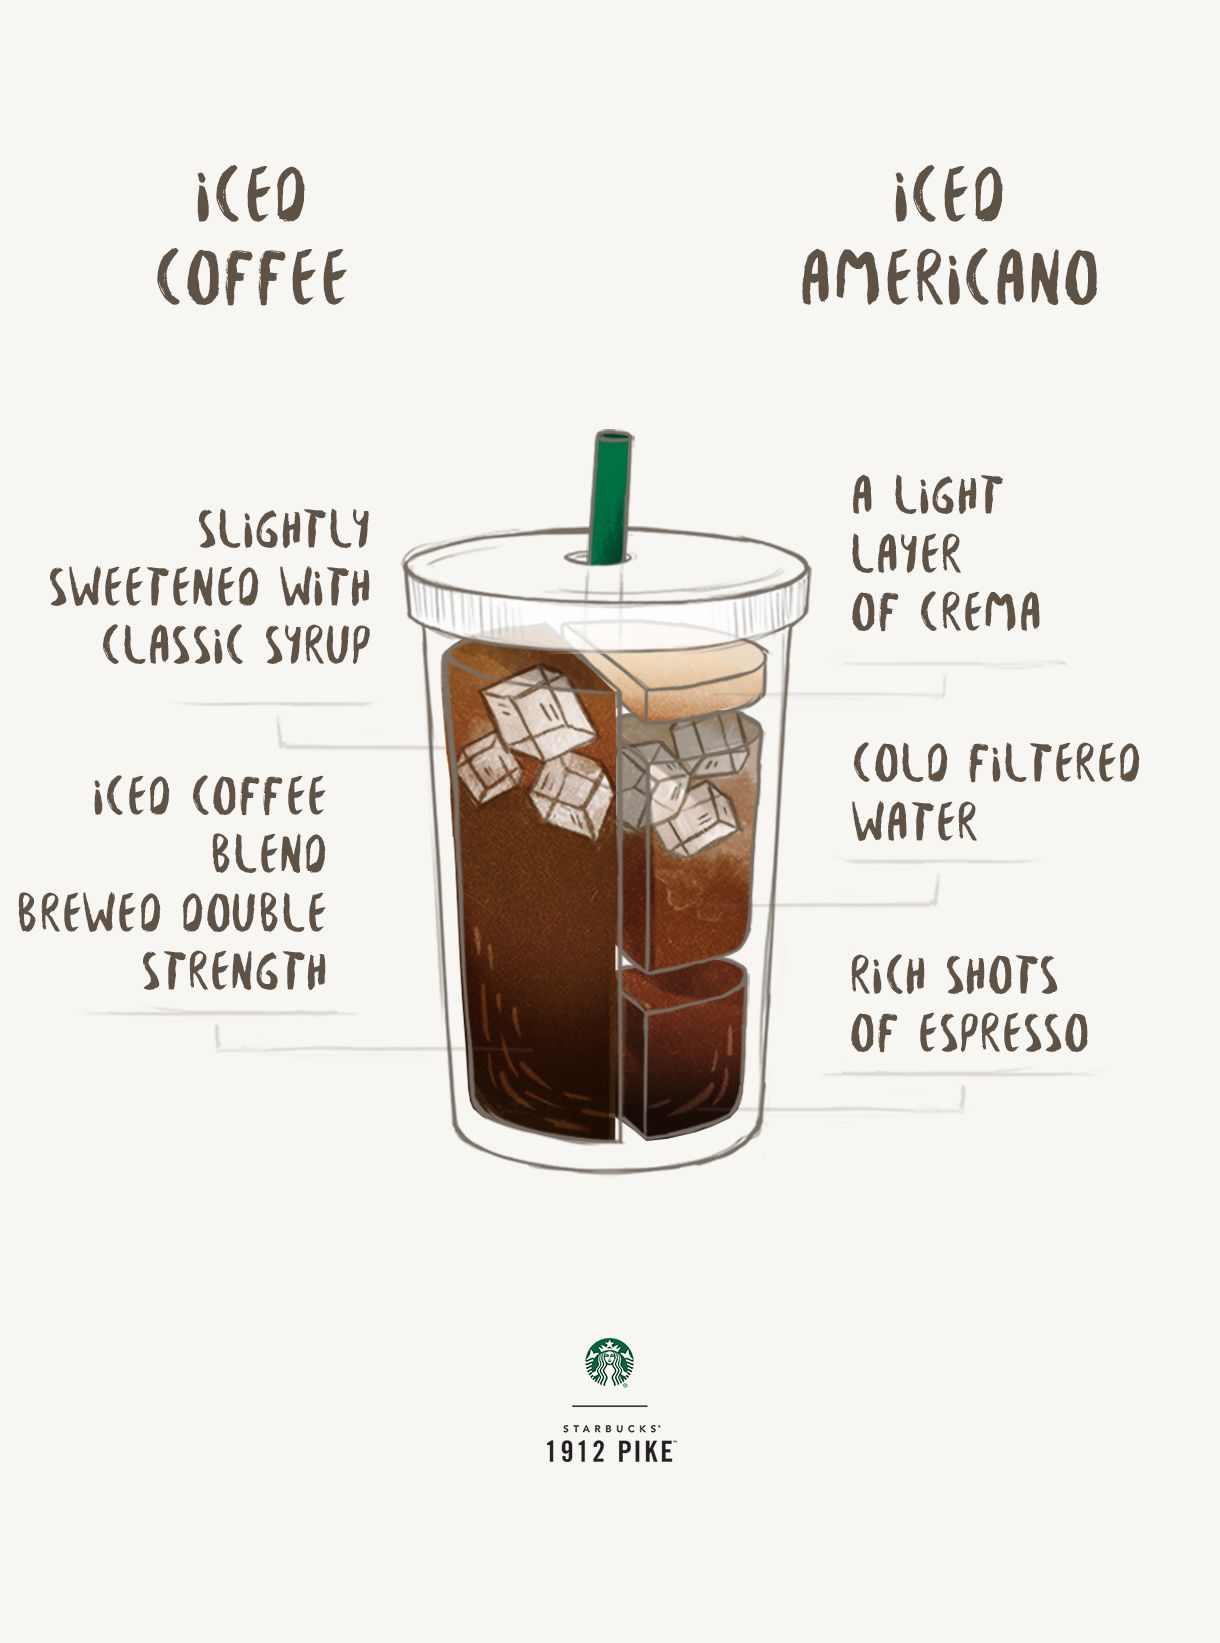 Coffee Americano Starbucks Iced Coffee Vs Iced Americano Annika 39s Coffee Addiction